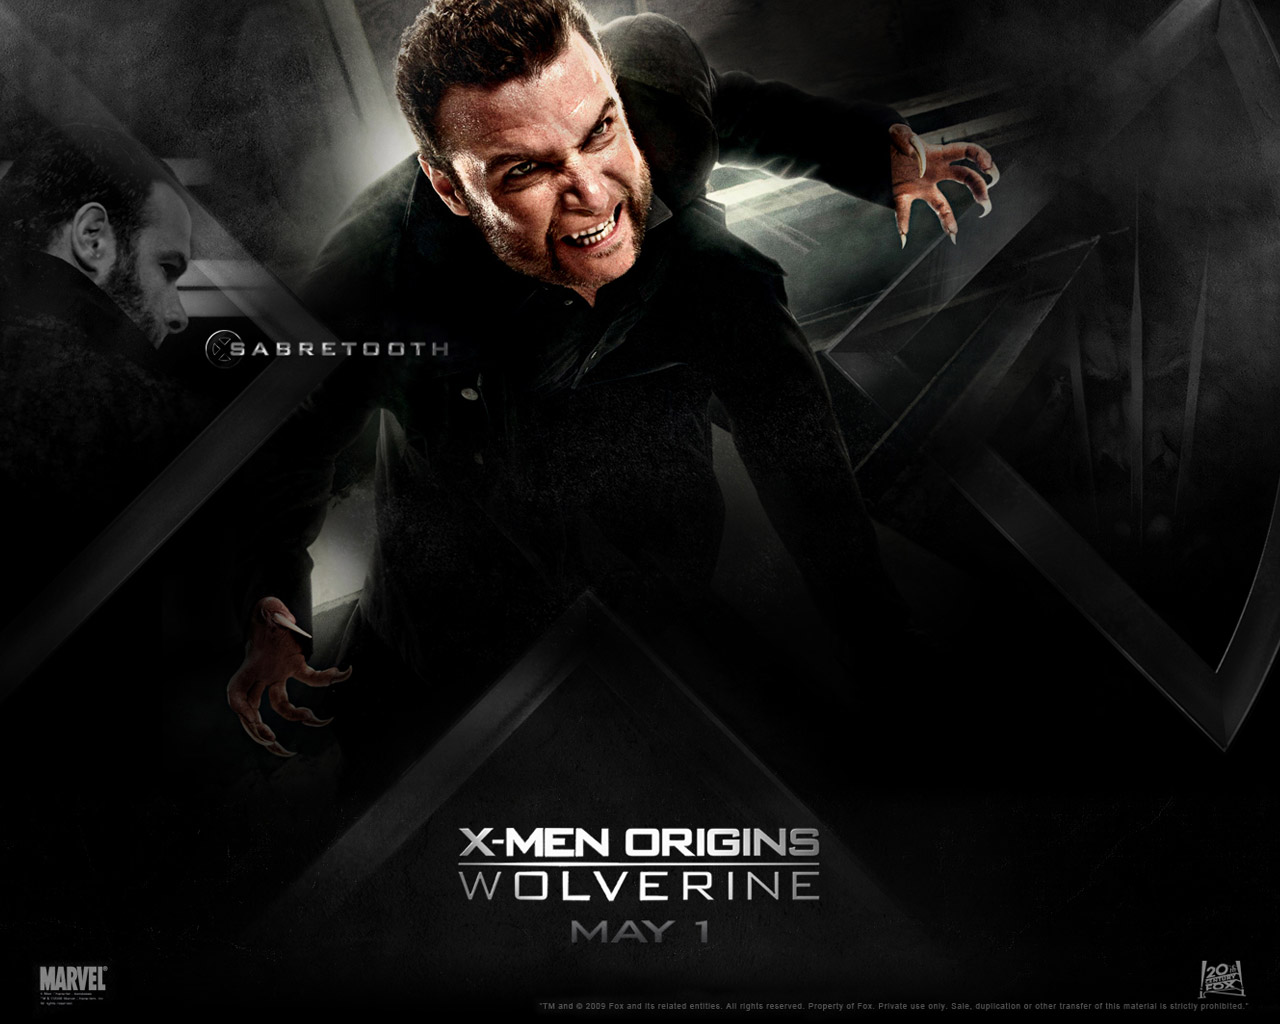 x-men origins wolverine swesub